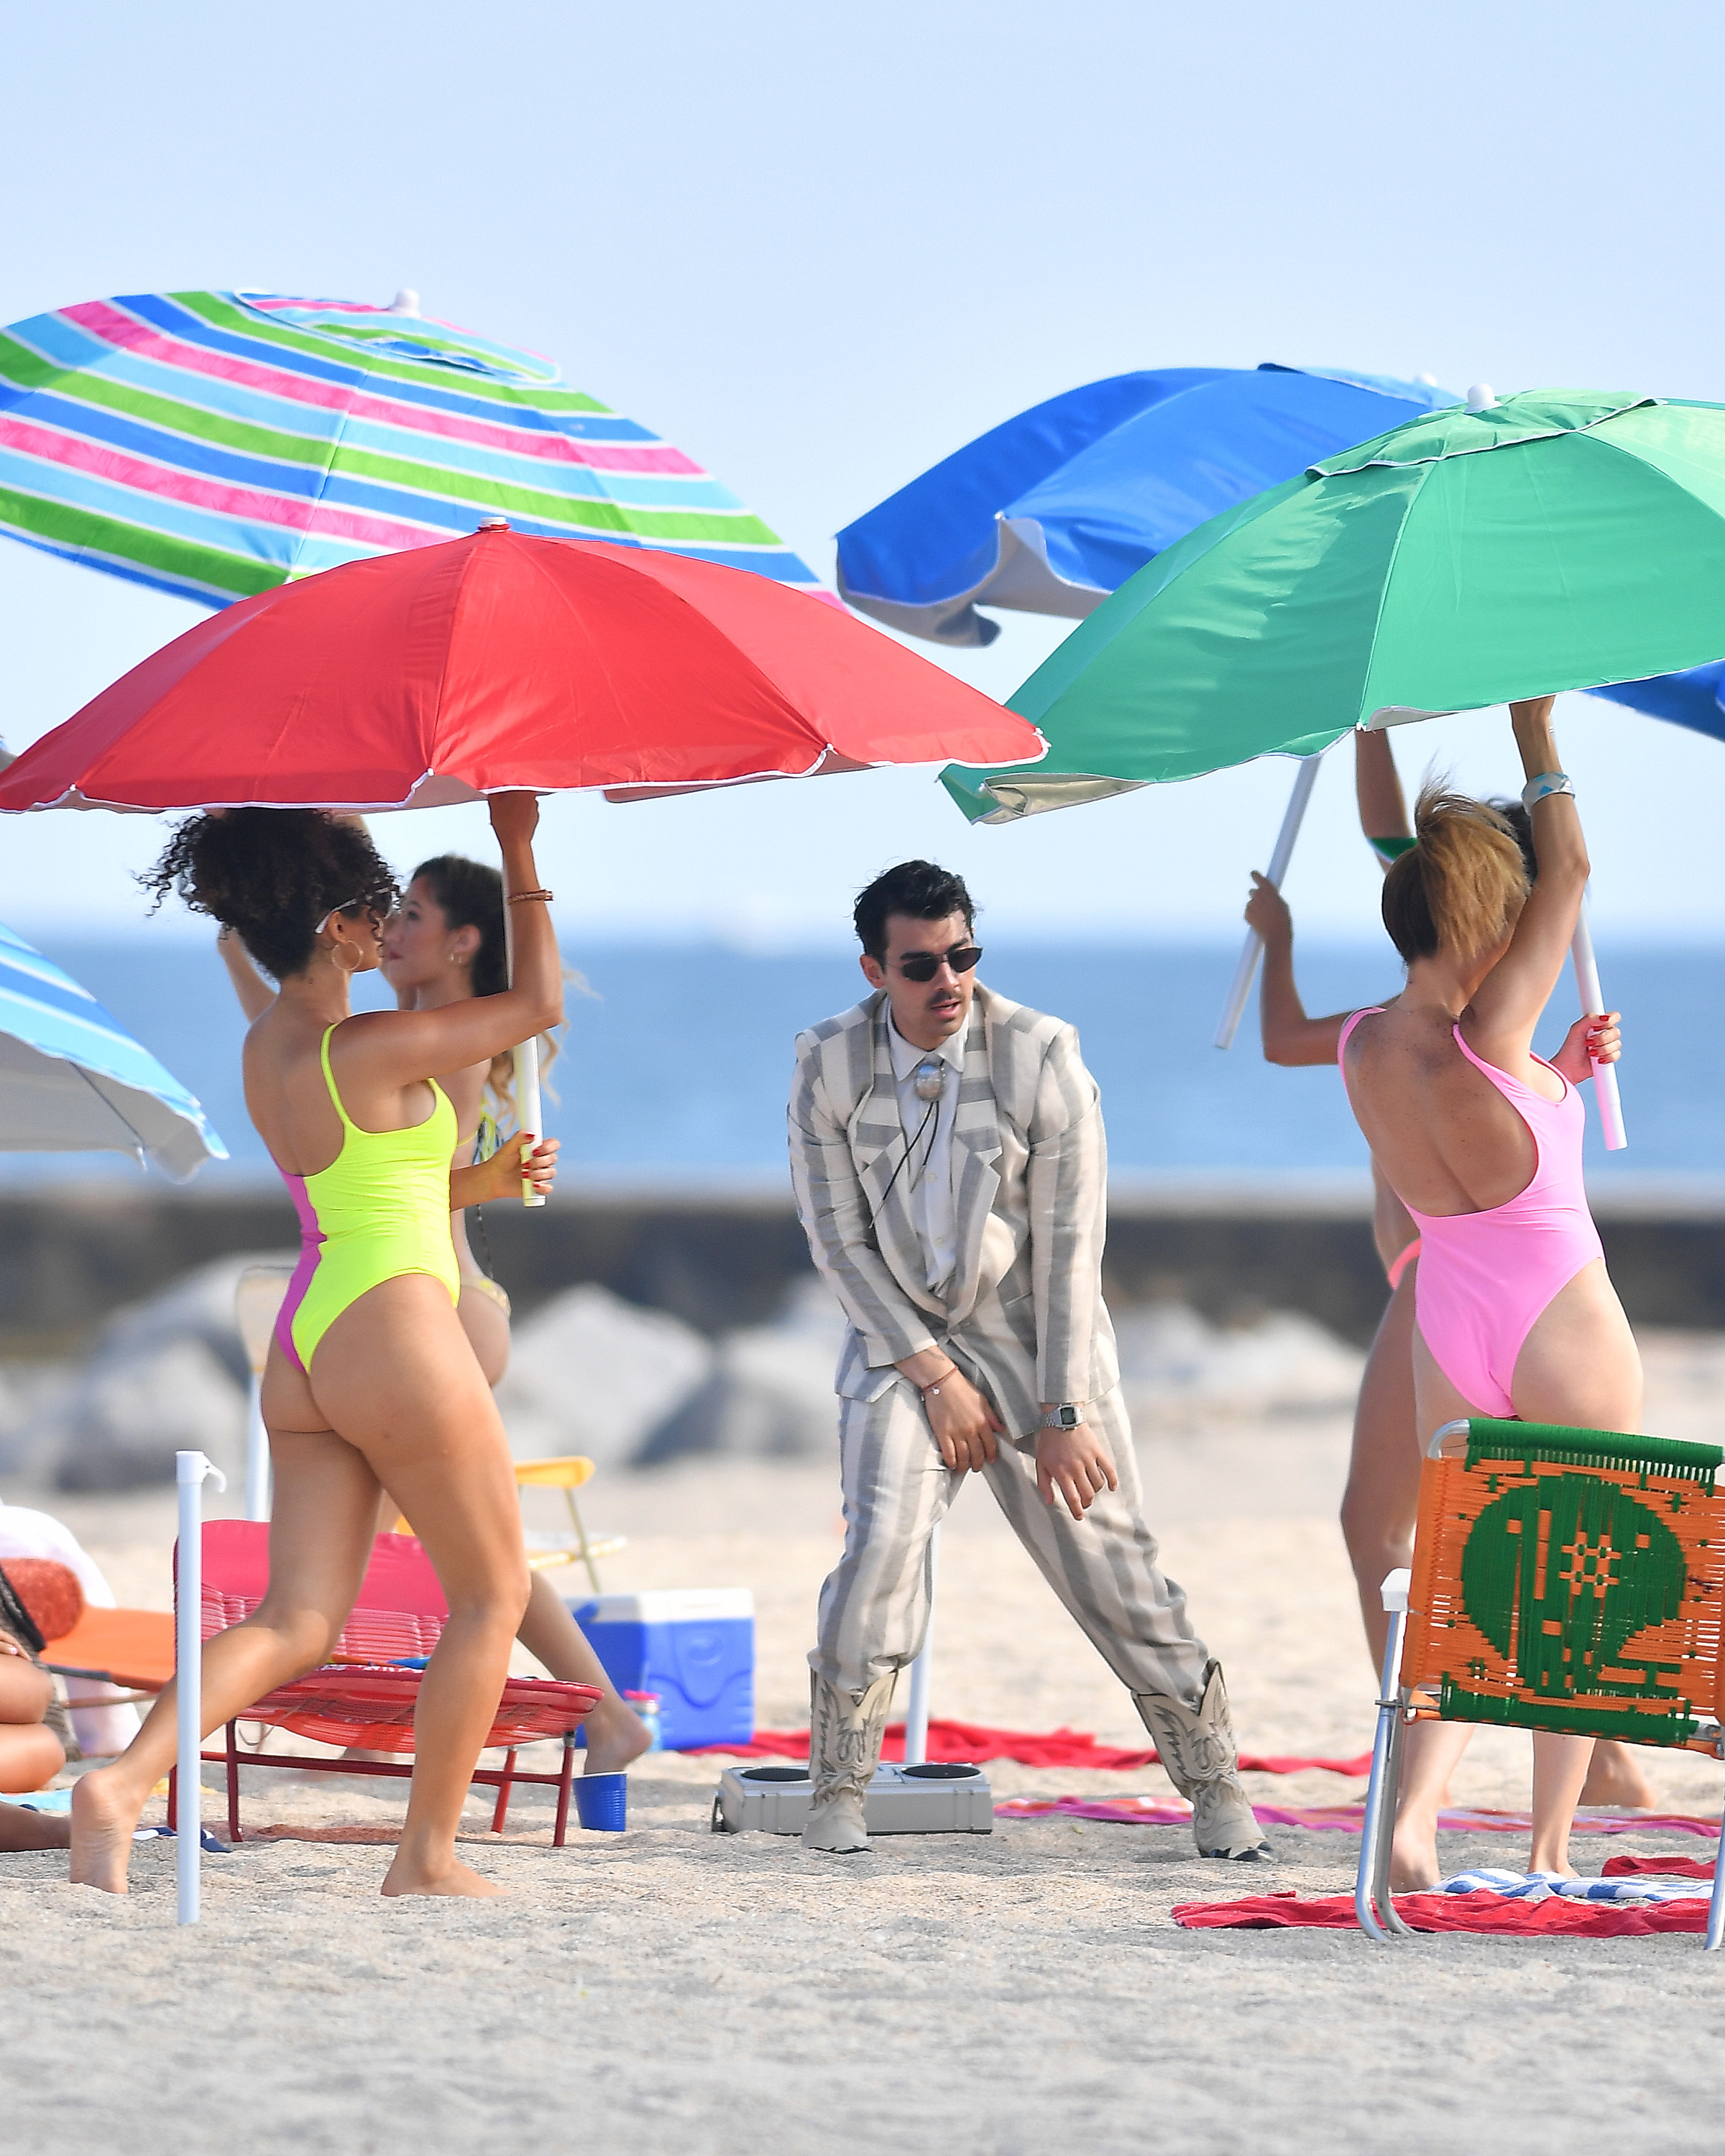 Joe Jonas was spotted busting a move while filming a new music video in Miami, FL on March 31, 2019.